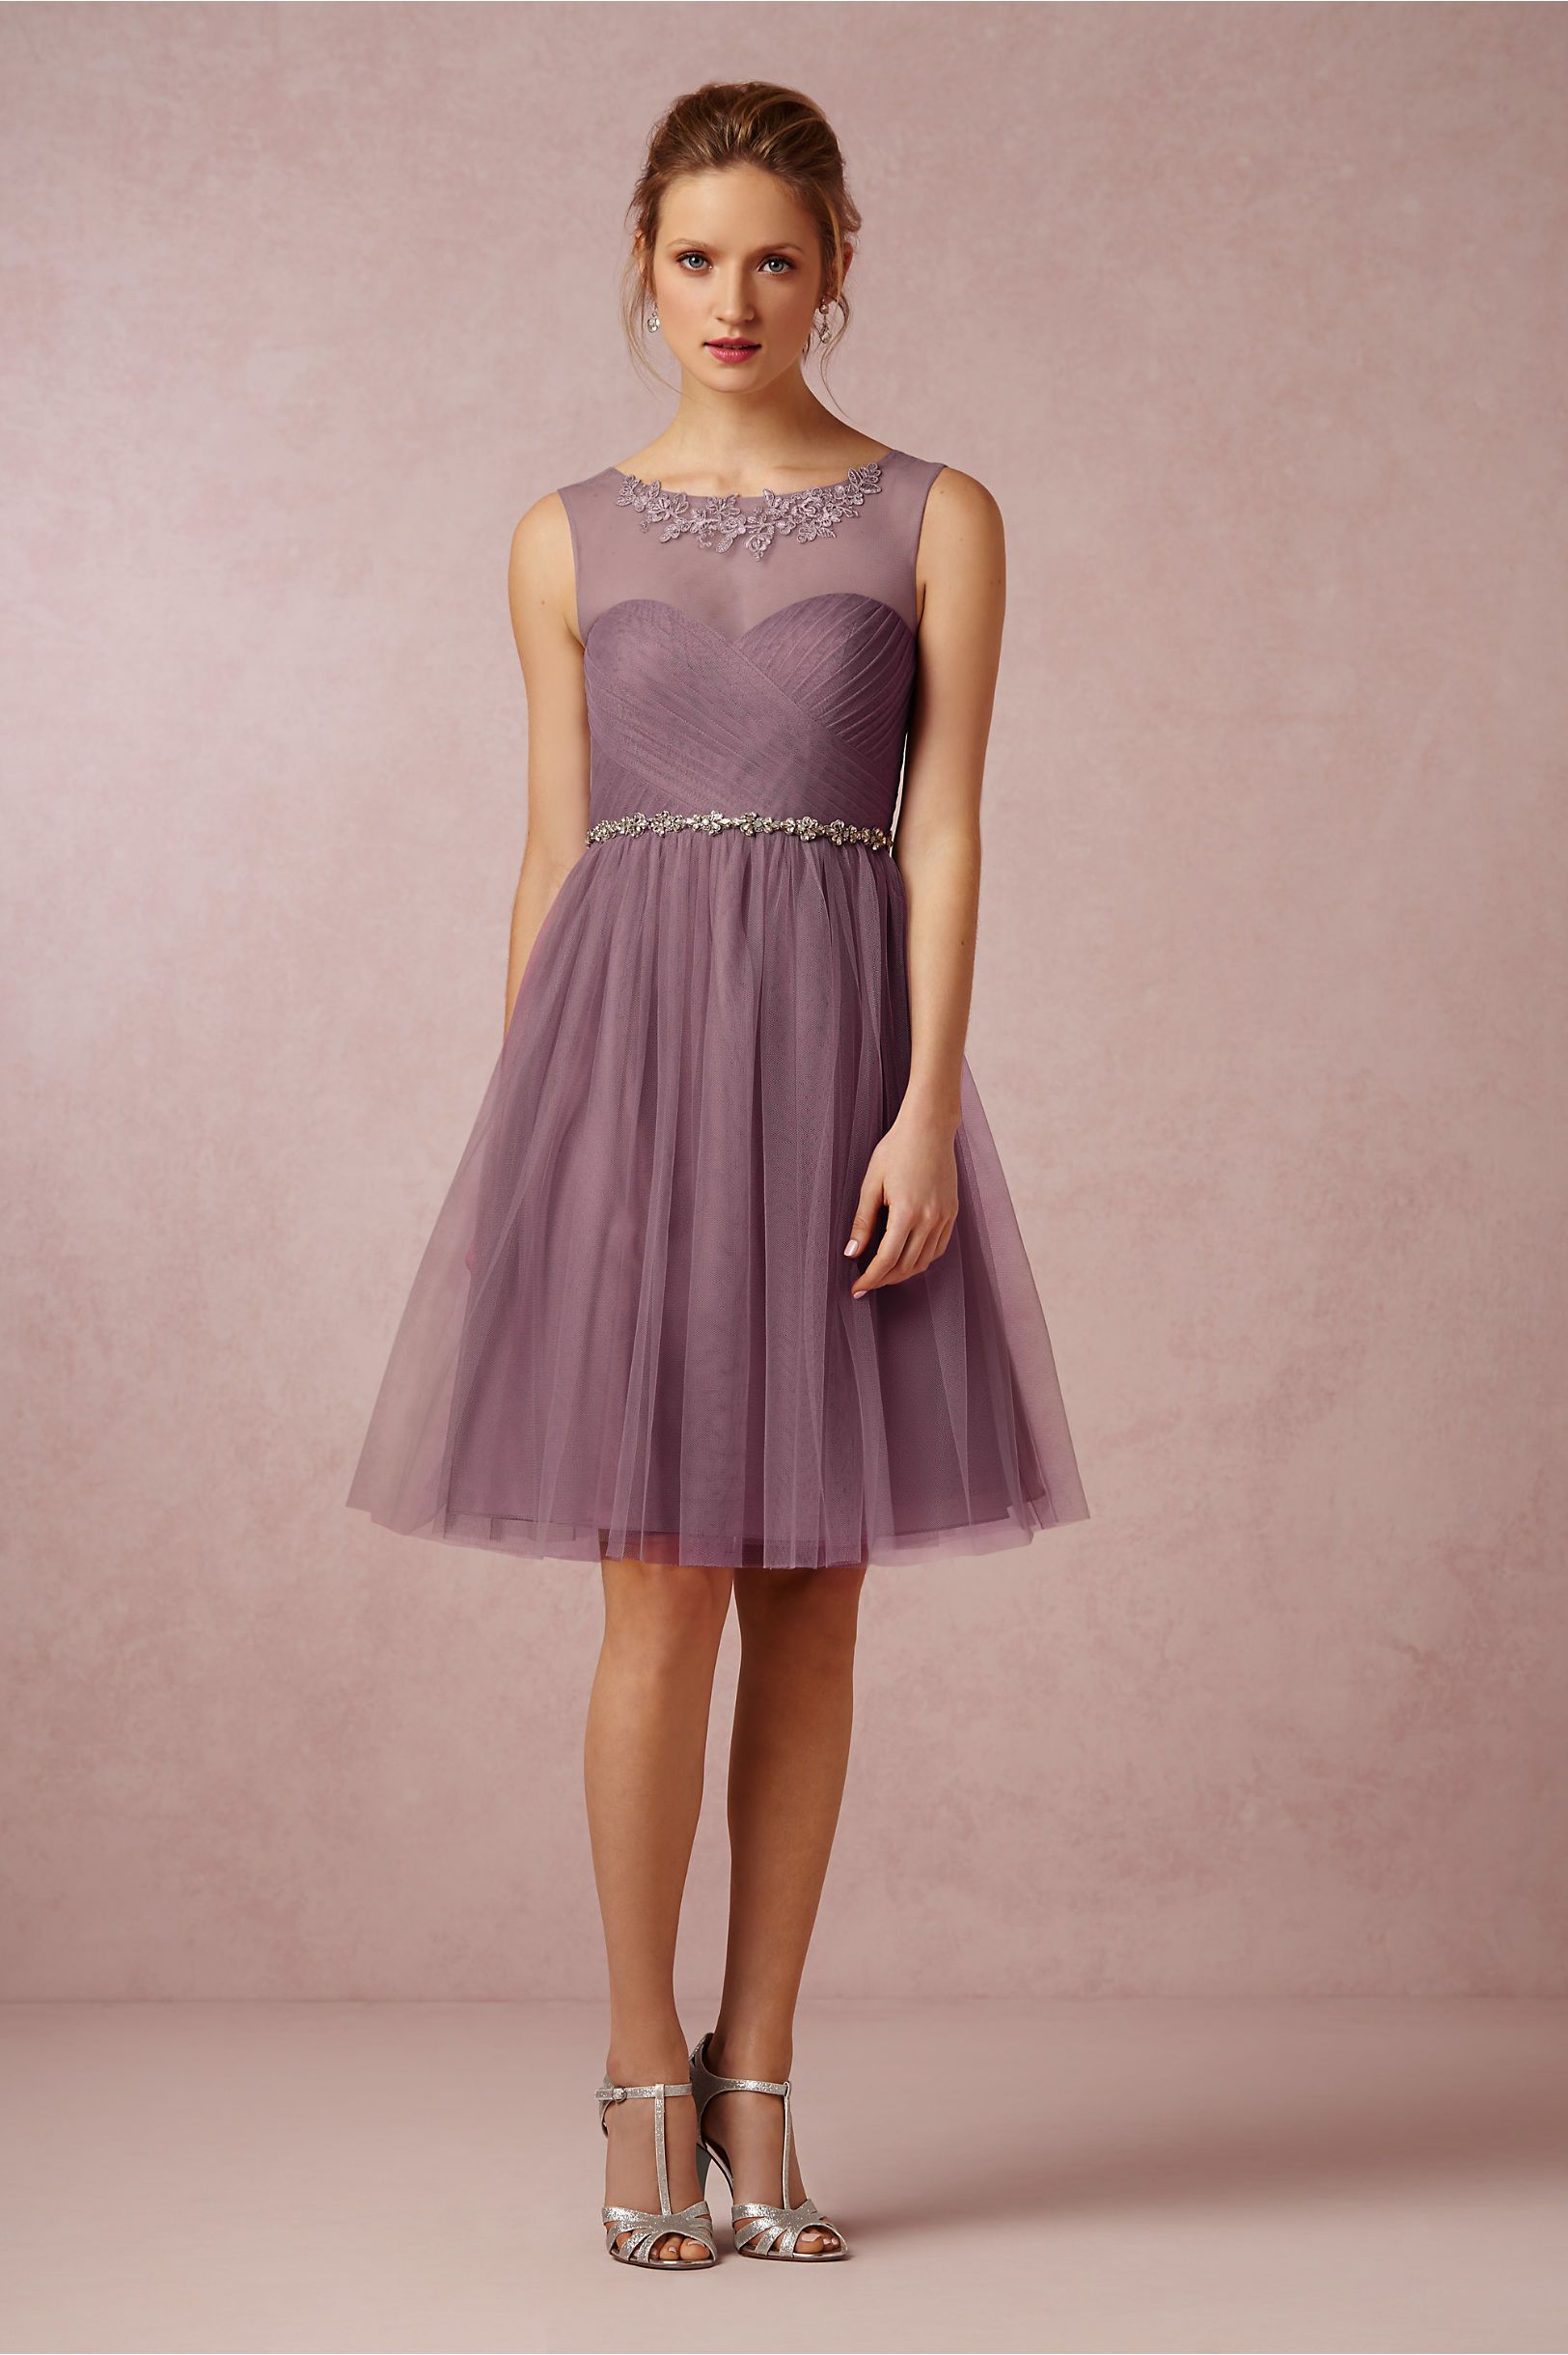 Chloe Dress from BHLDN | Dress up! | Pinterest | Vestiditos, Damas y ...